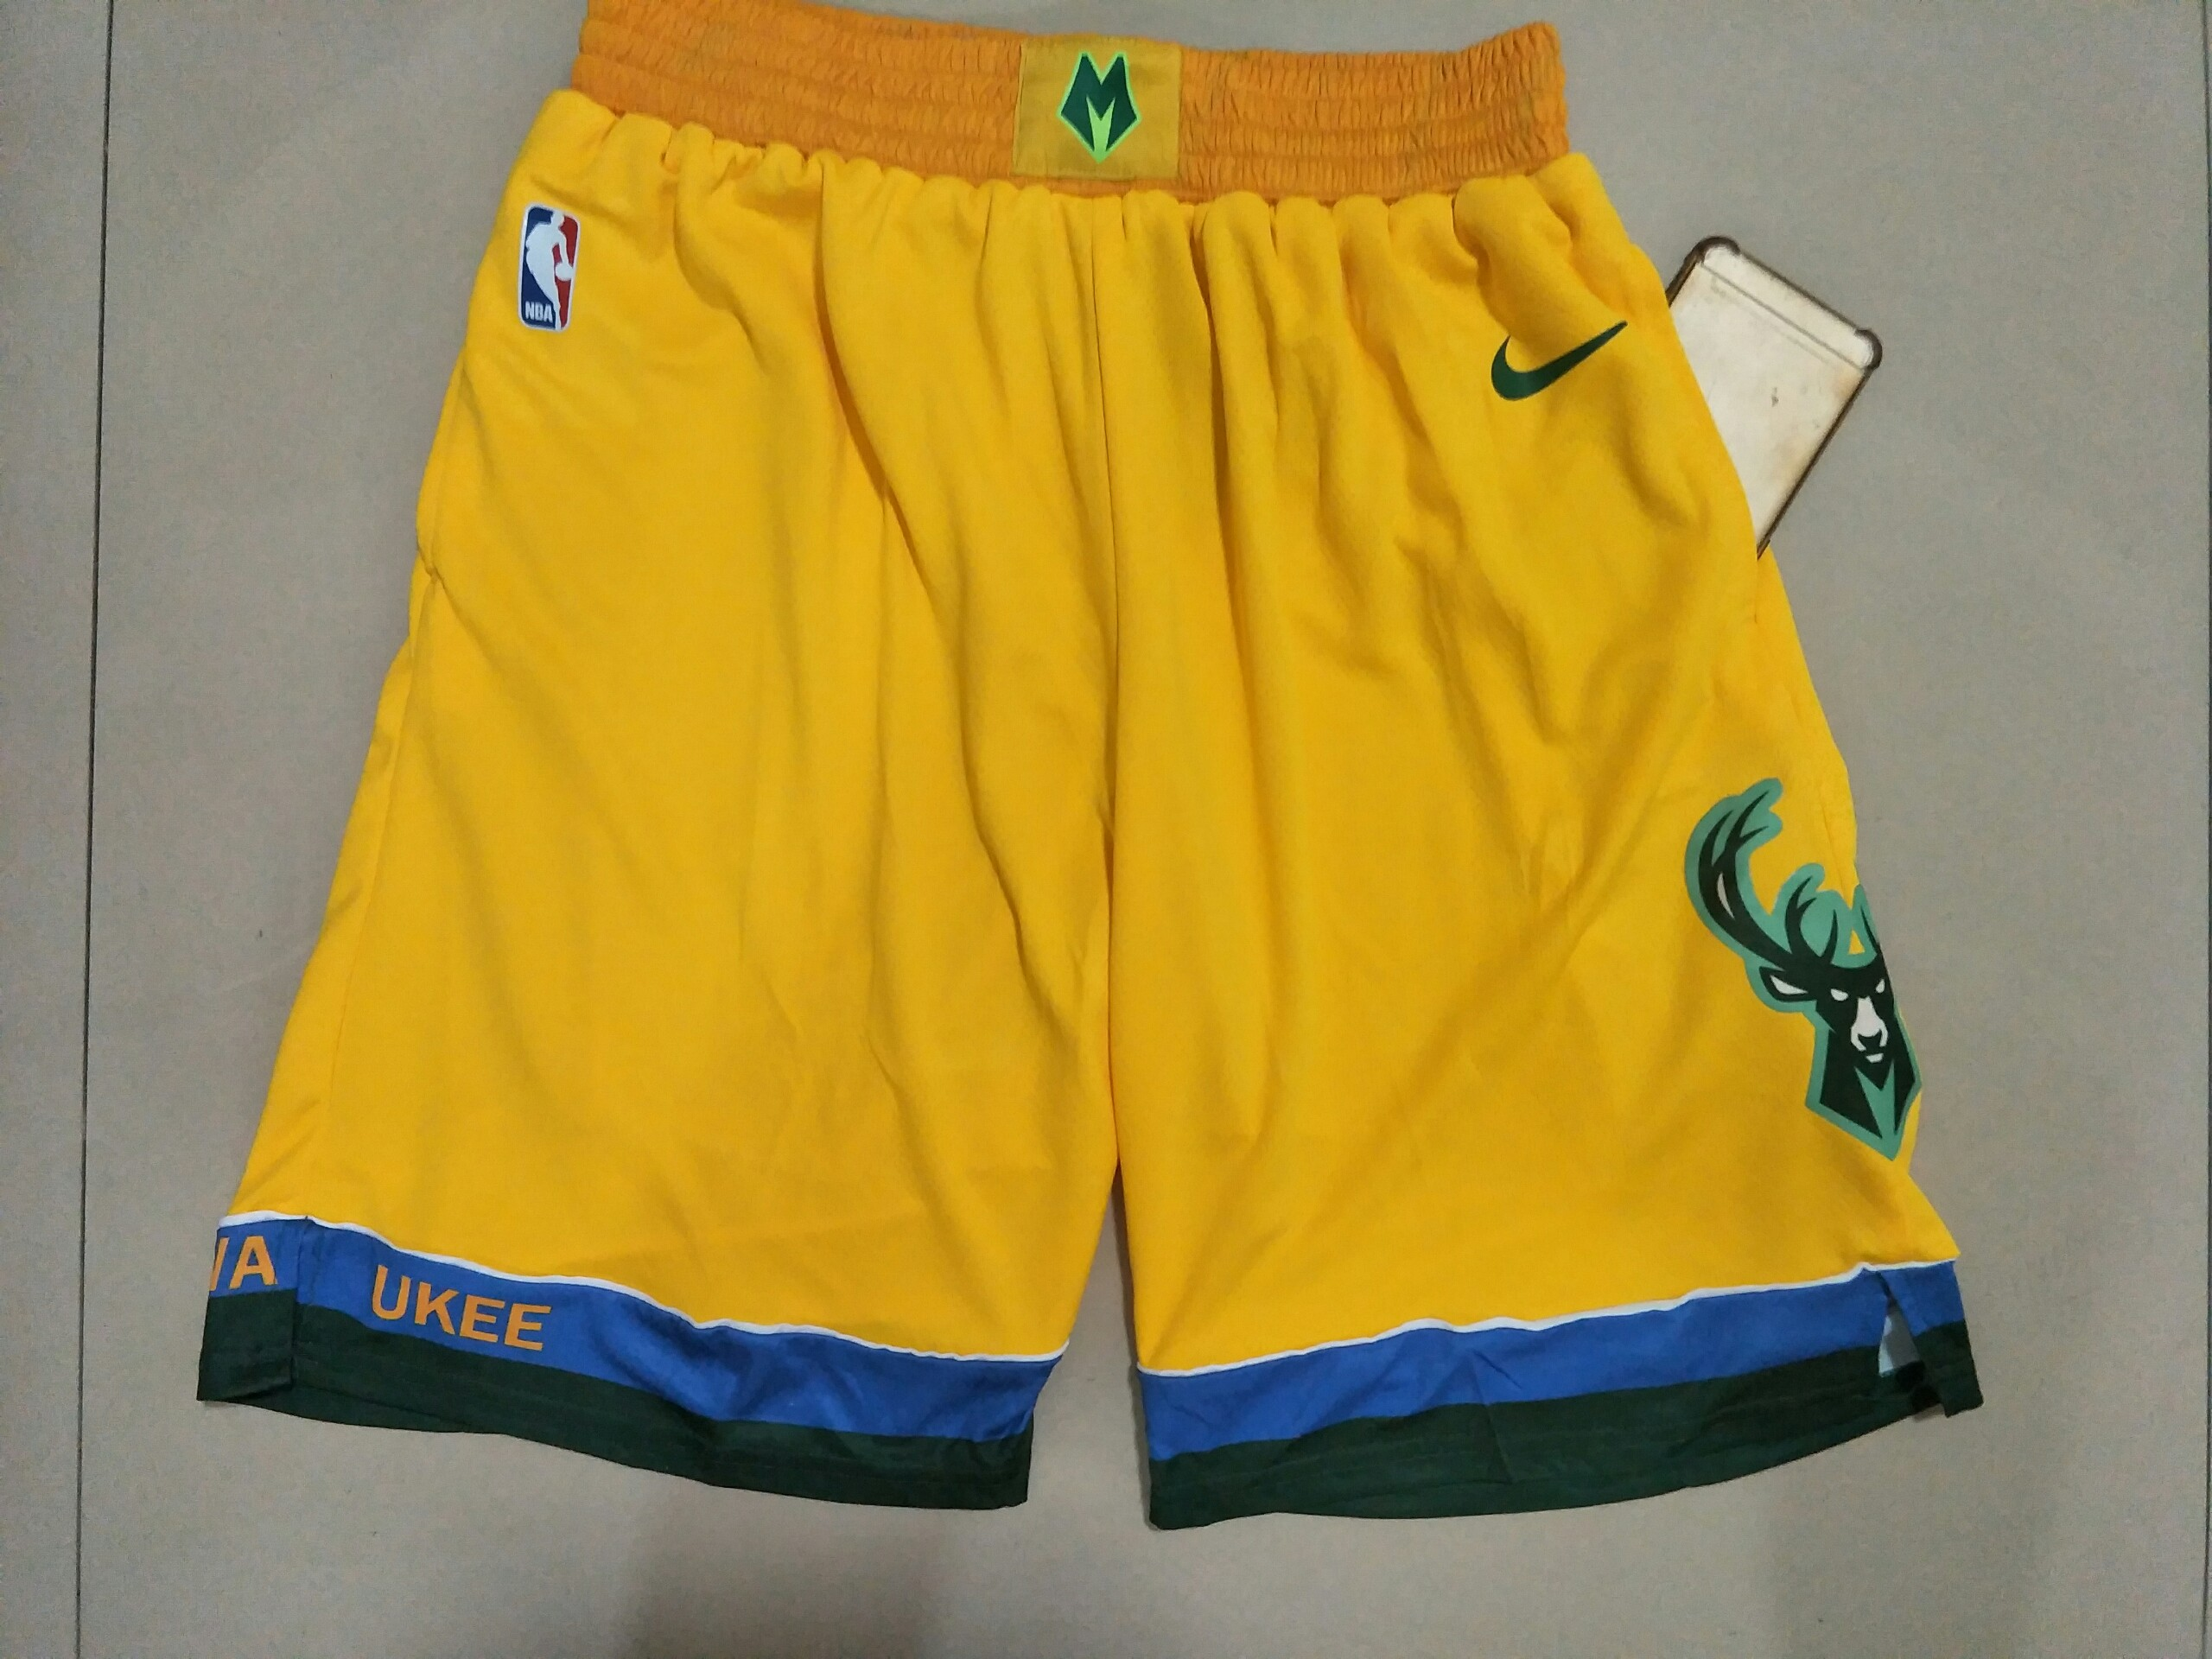 Bucks Yellow City Edition With Pocket Nike Swingman Shorts